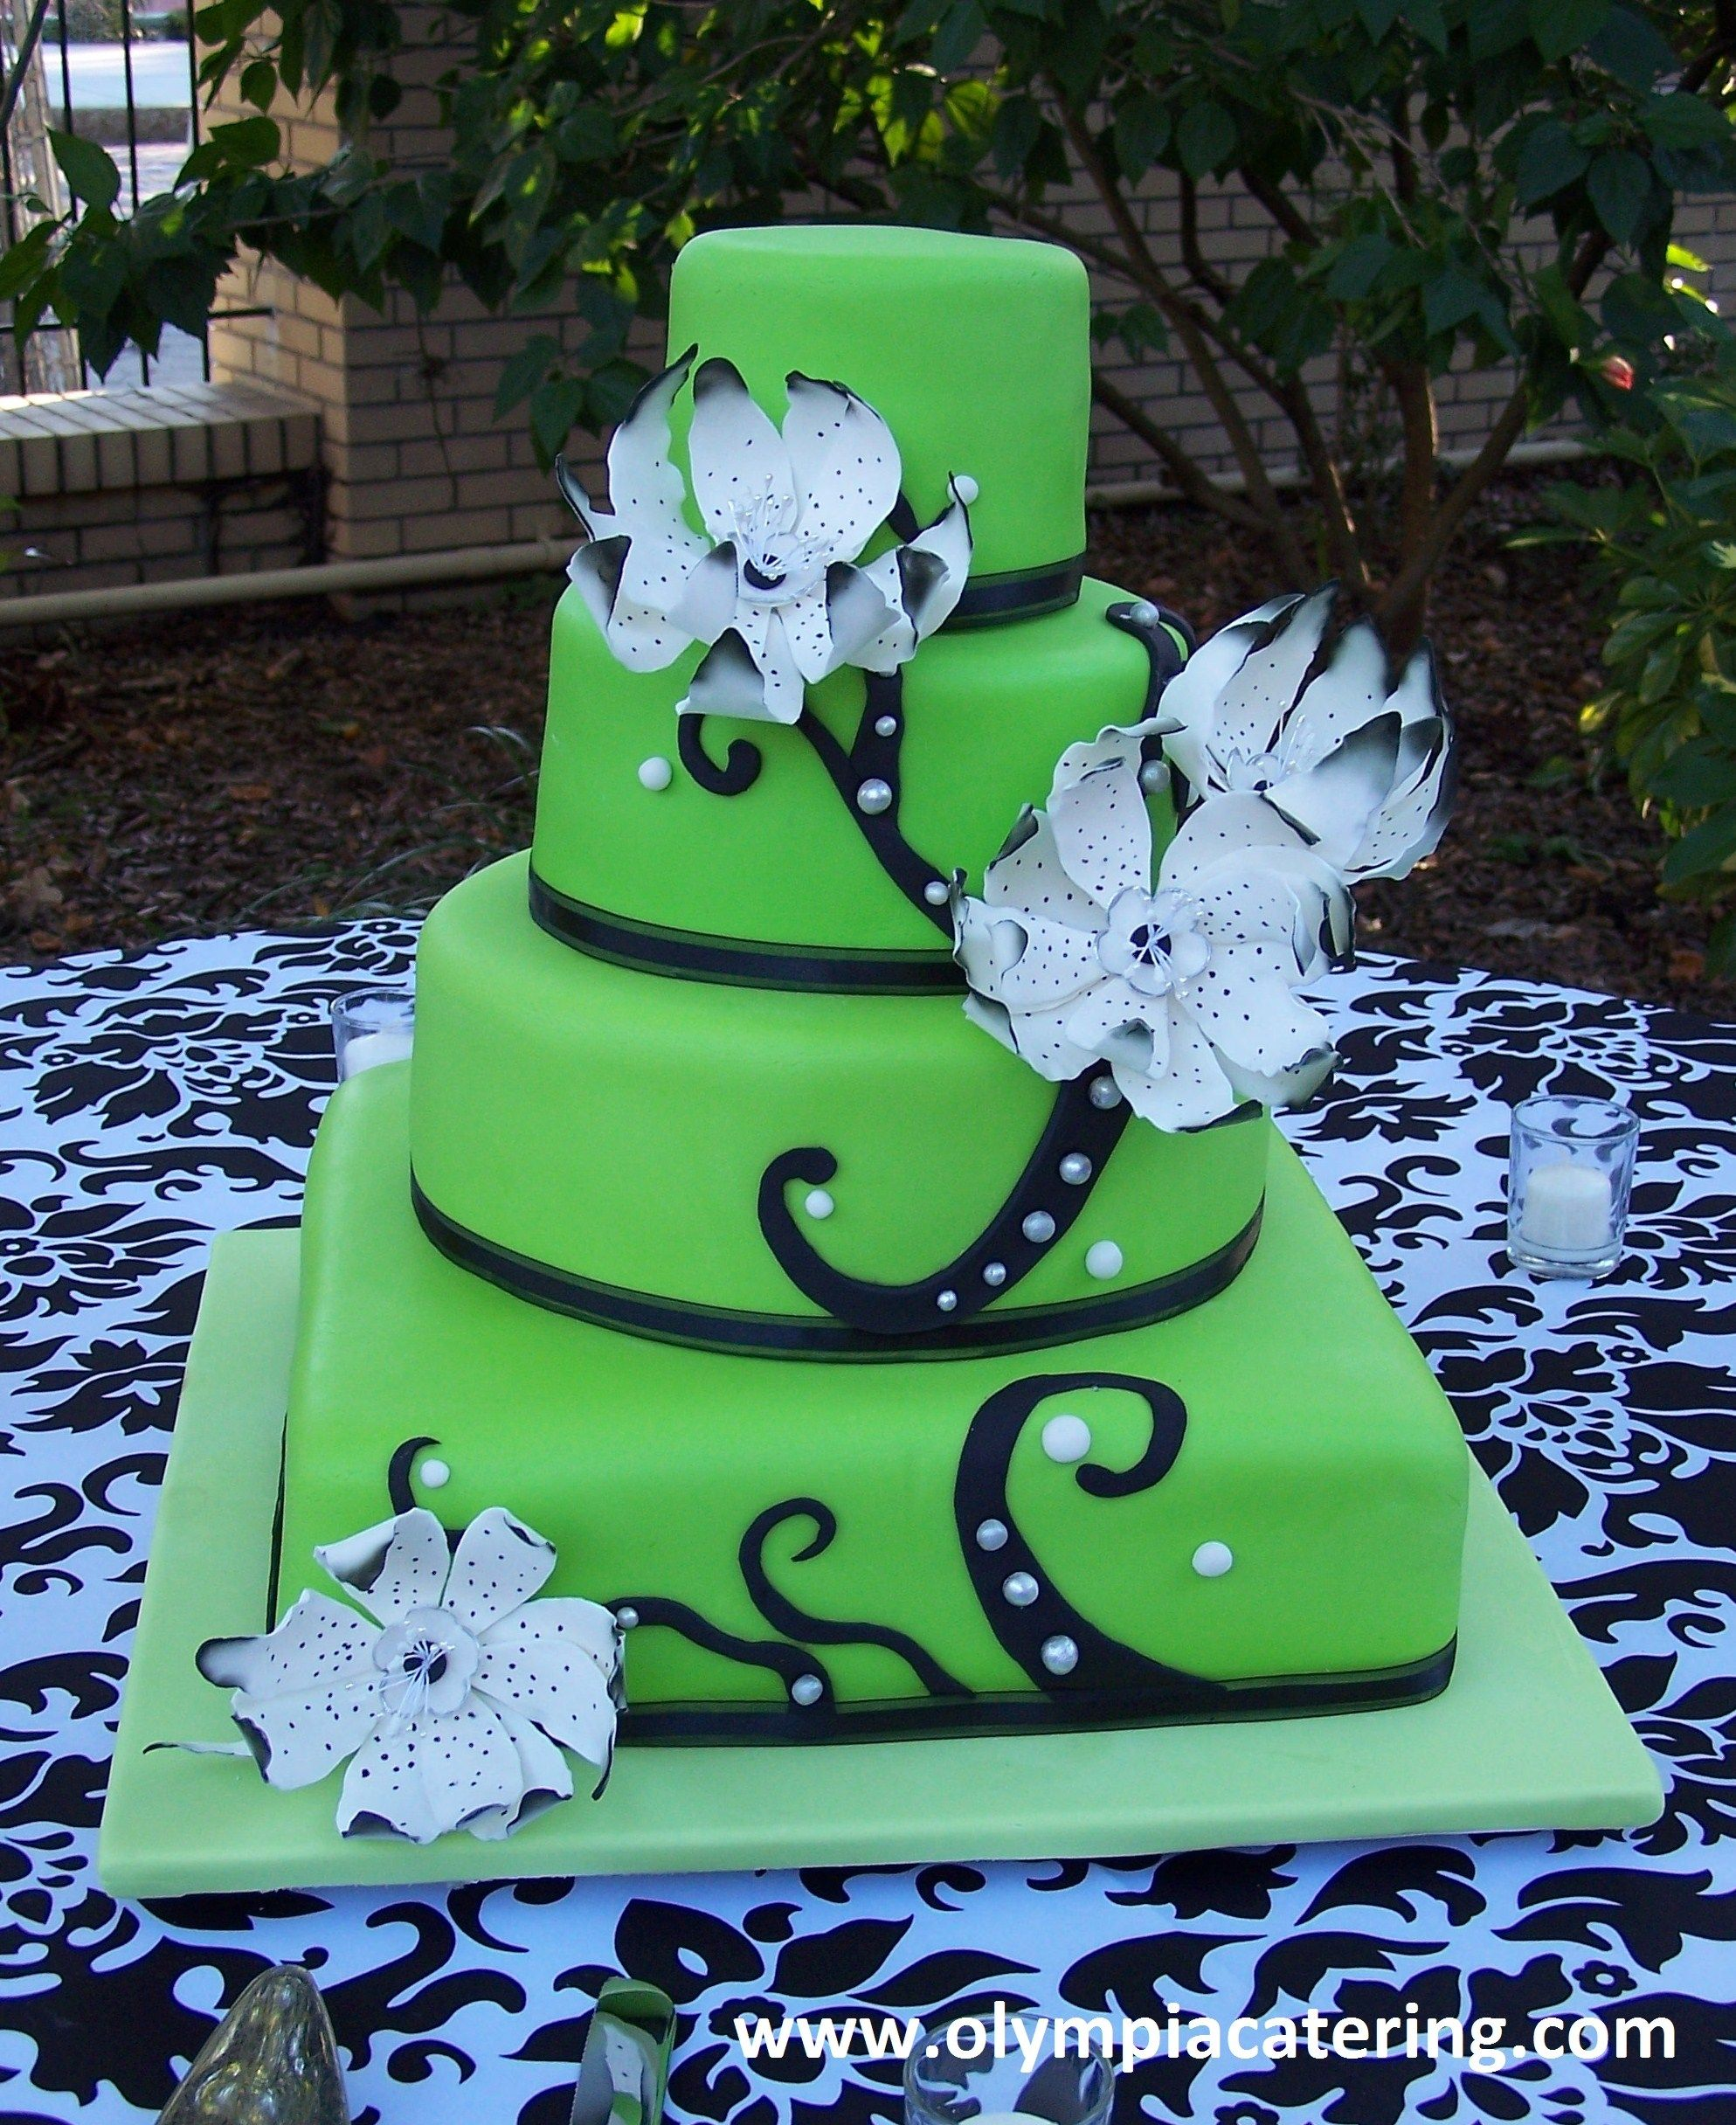 square black and white wedding cakes pictures%0A Round and Square Wedding Cake  Green Fondant with Black and White Details   Gumpaste Flowers